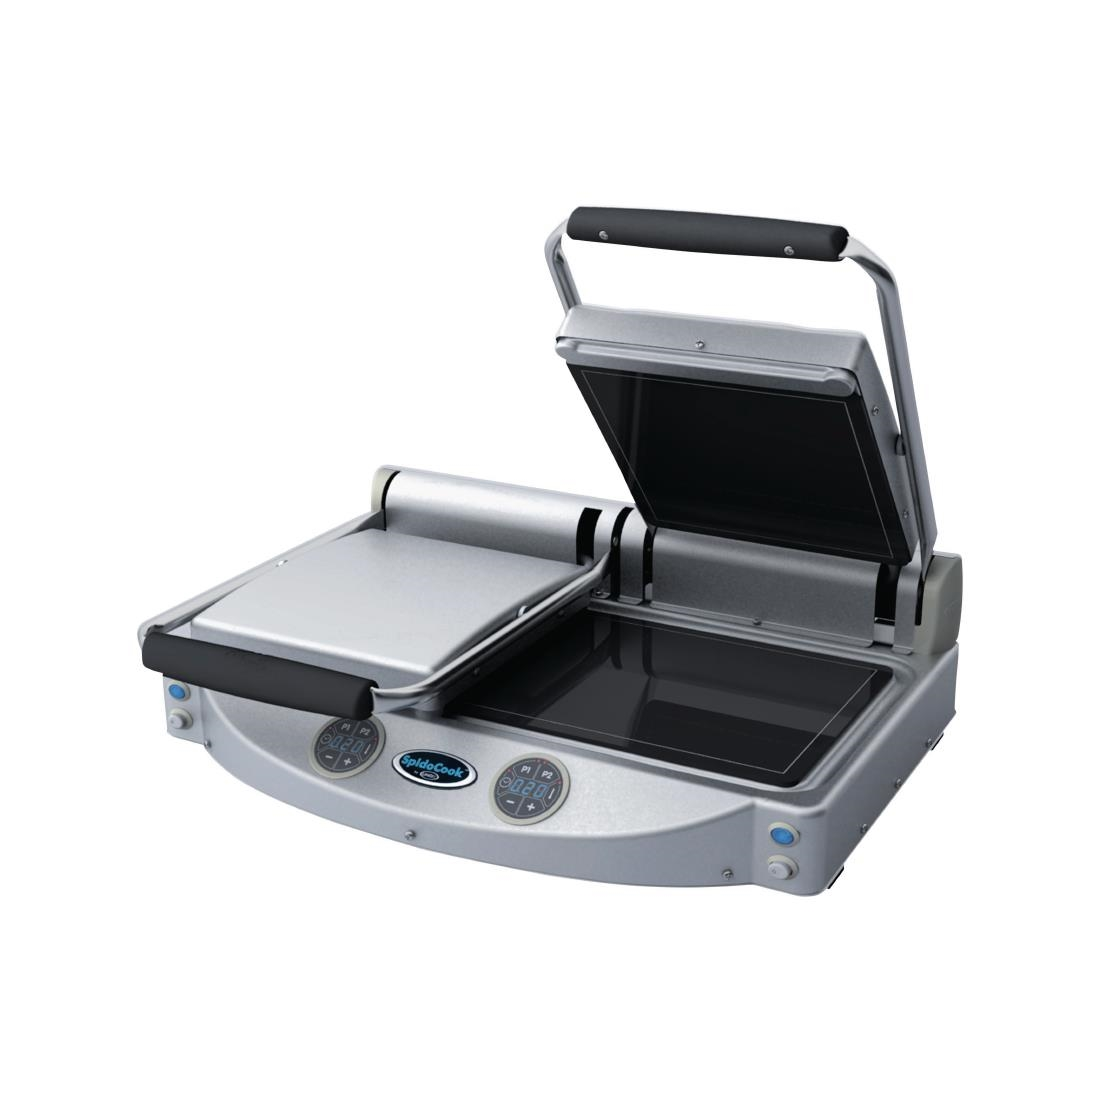 Click to view product details and reviews for Unox Spidocook Digital Double Contact Grill Xp020e.